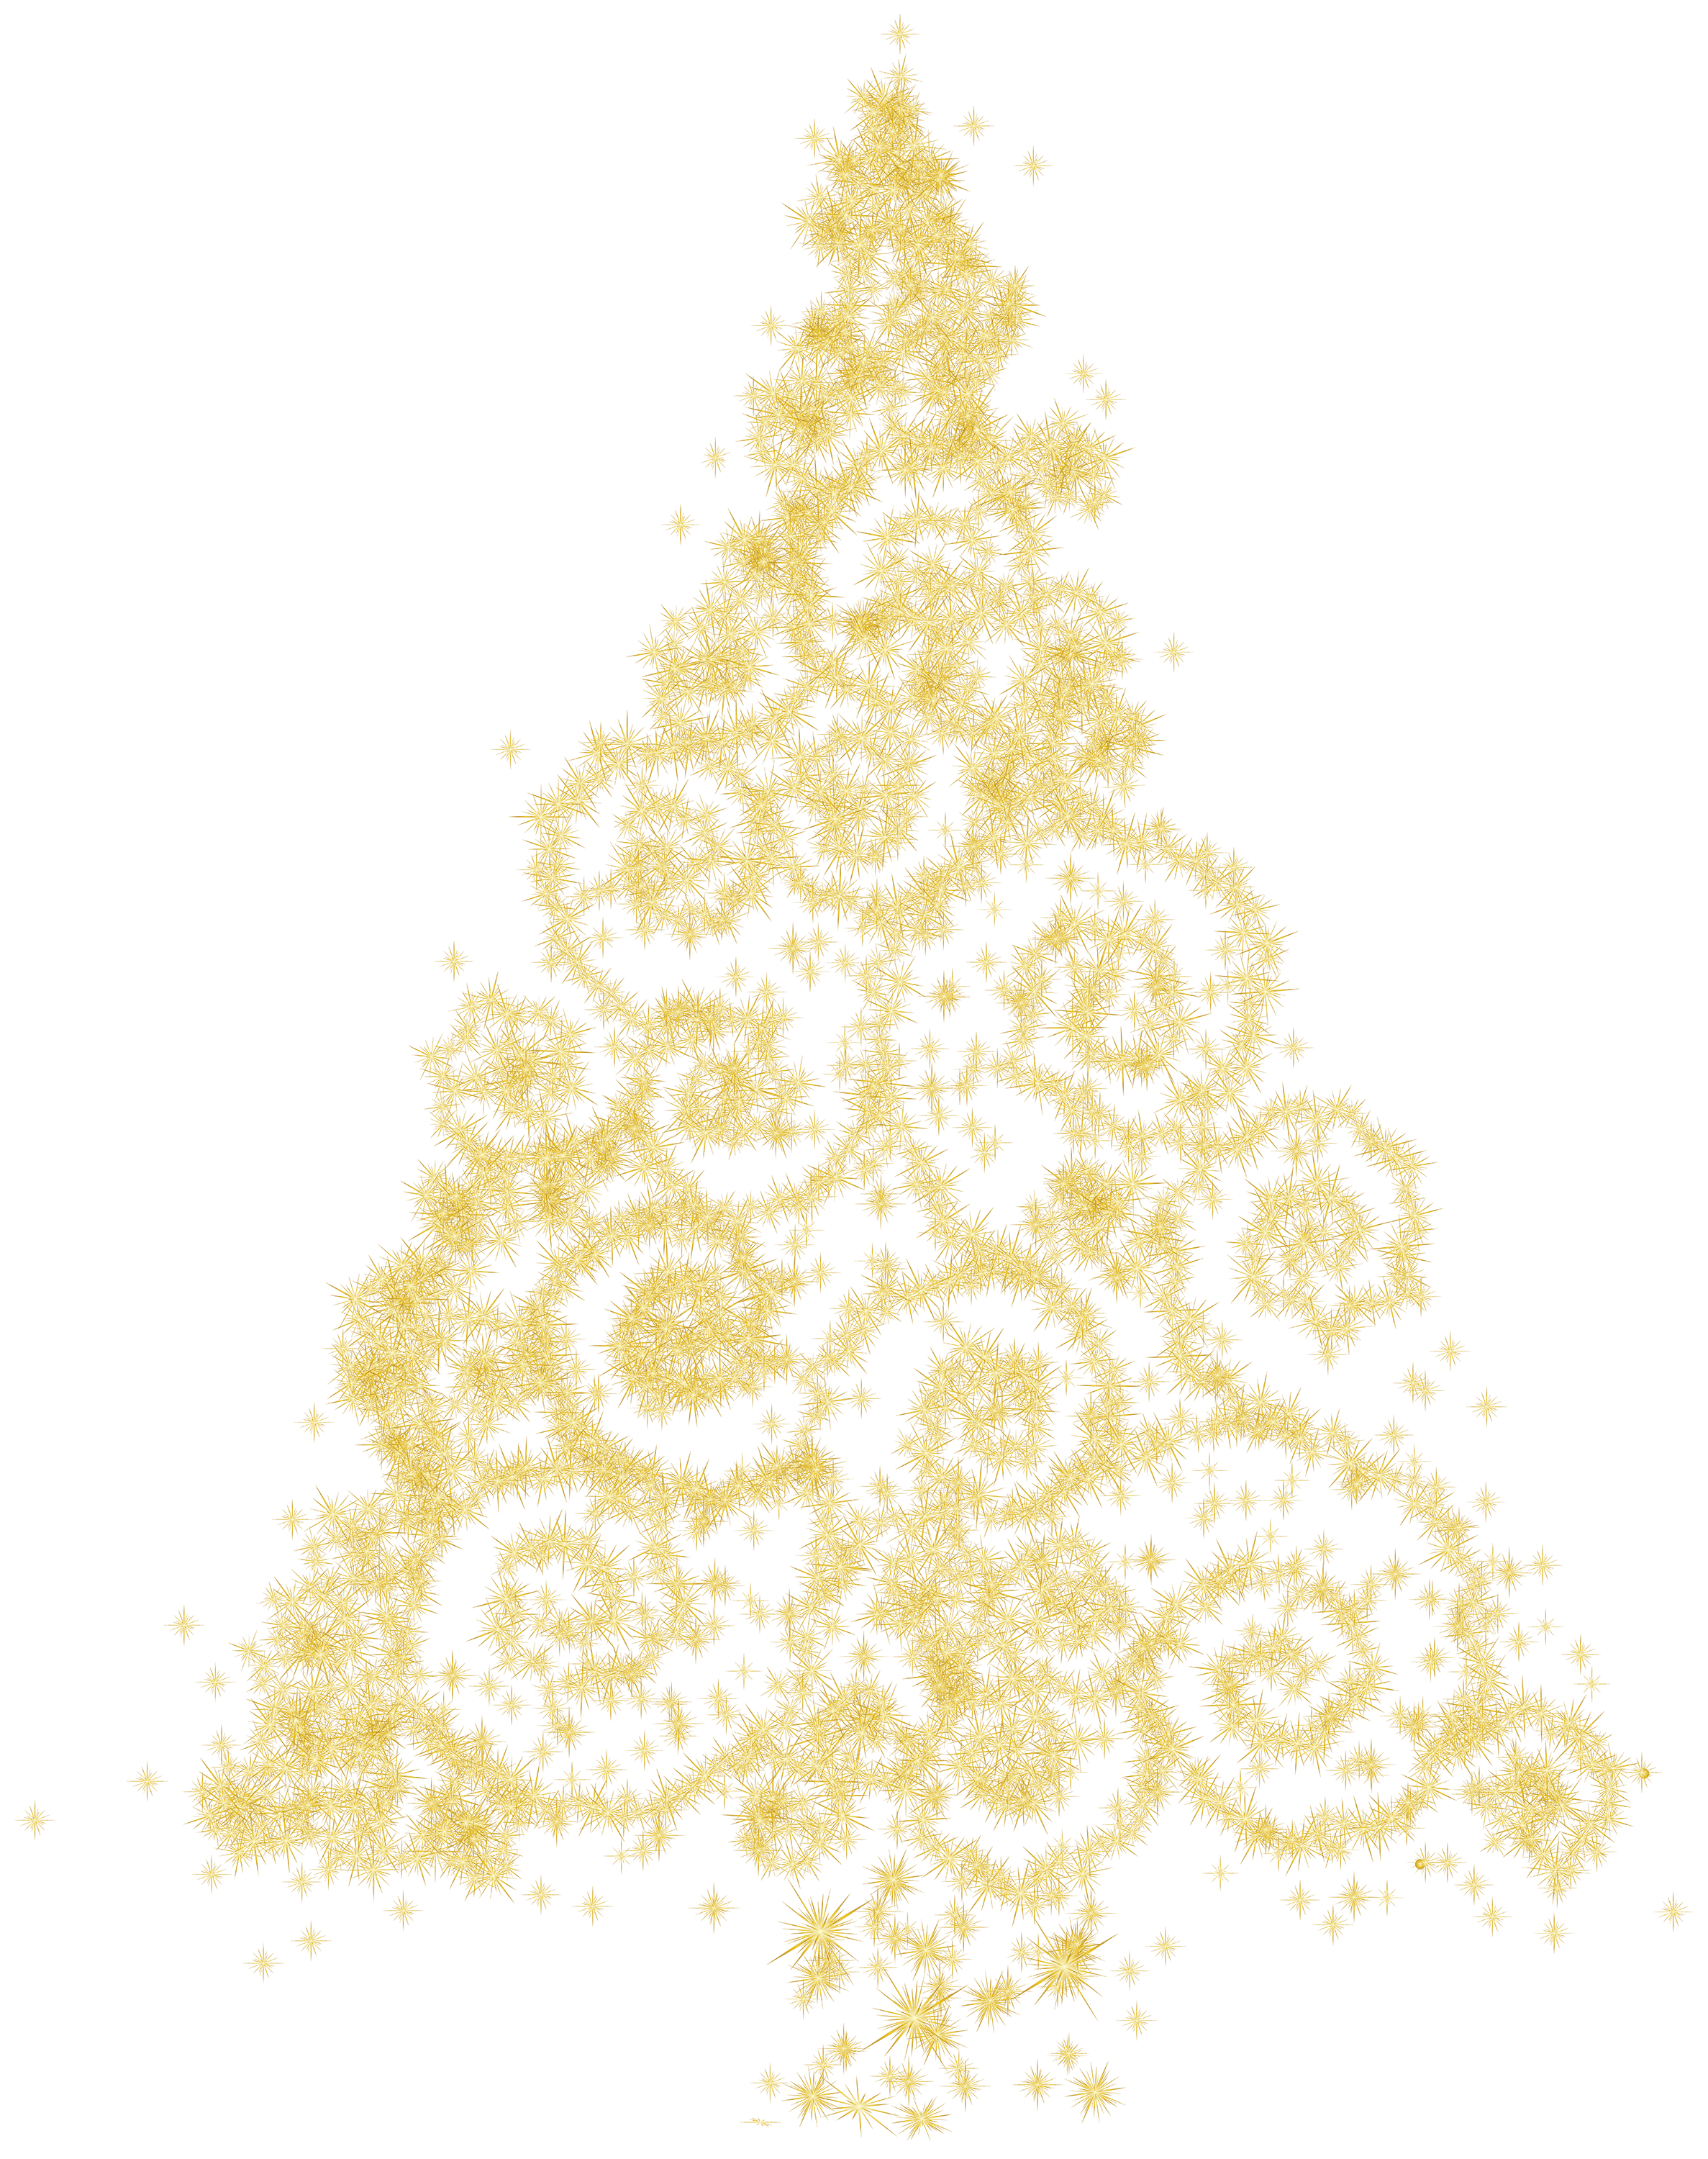 Abstract christmas ornament clipart graphic black and white library Gold Christmas Tree PNG Clip Art - Best WEB Clipart graphic black and white library